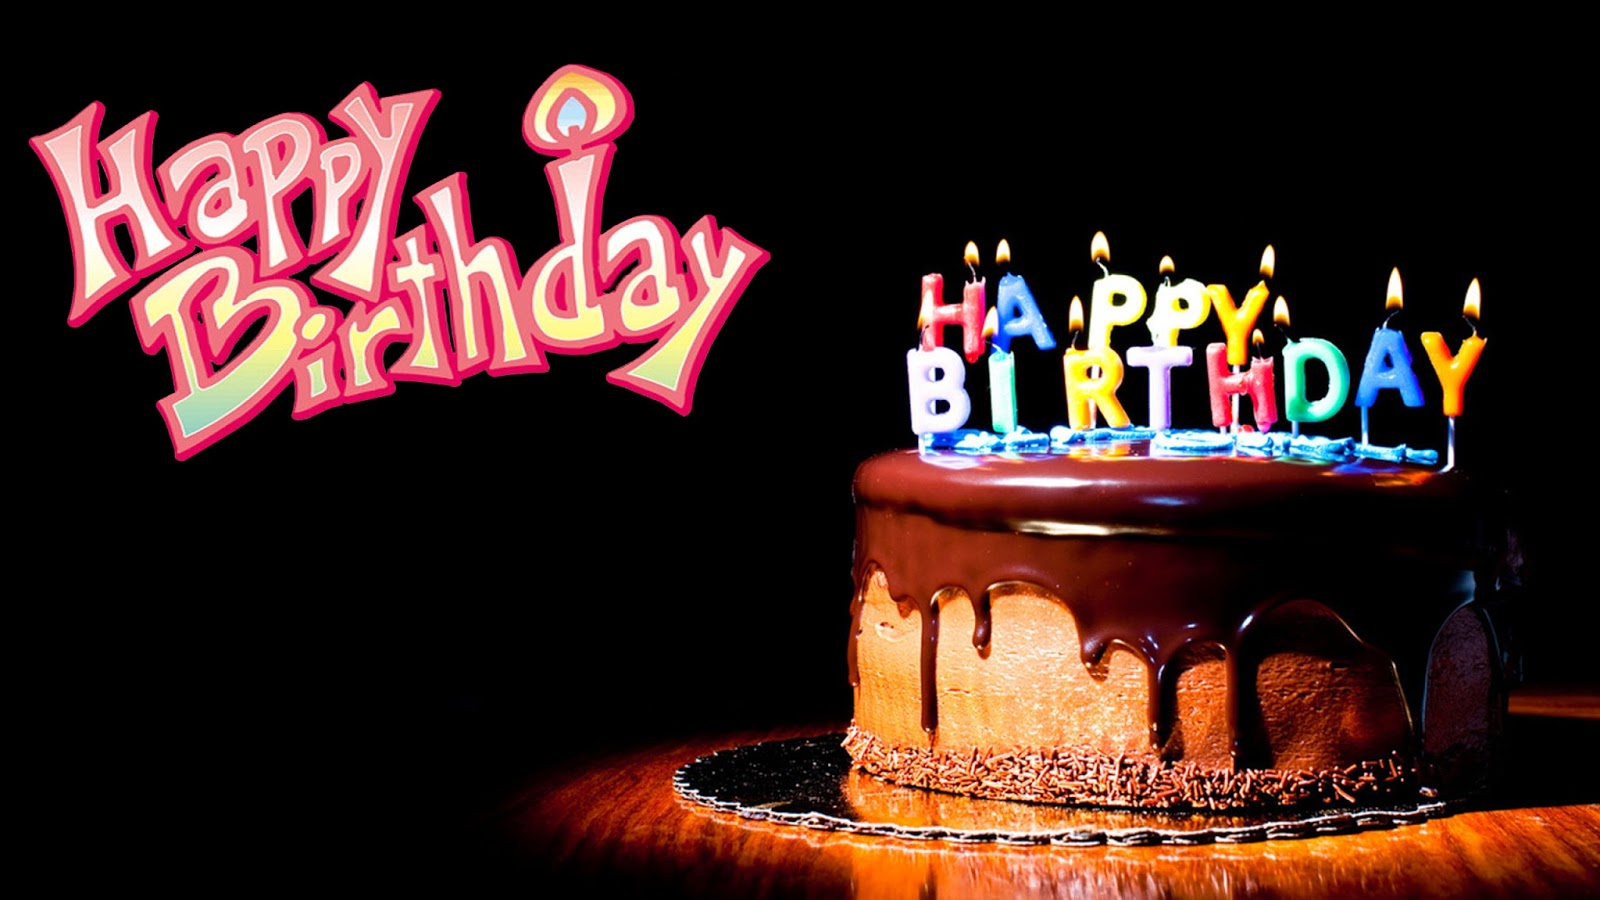 Happy-Birthday-Chocolate-Image-In-Night-HD-Wide